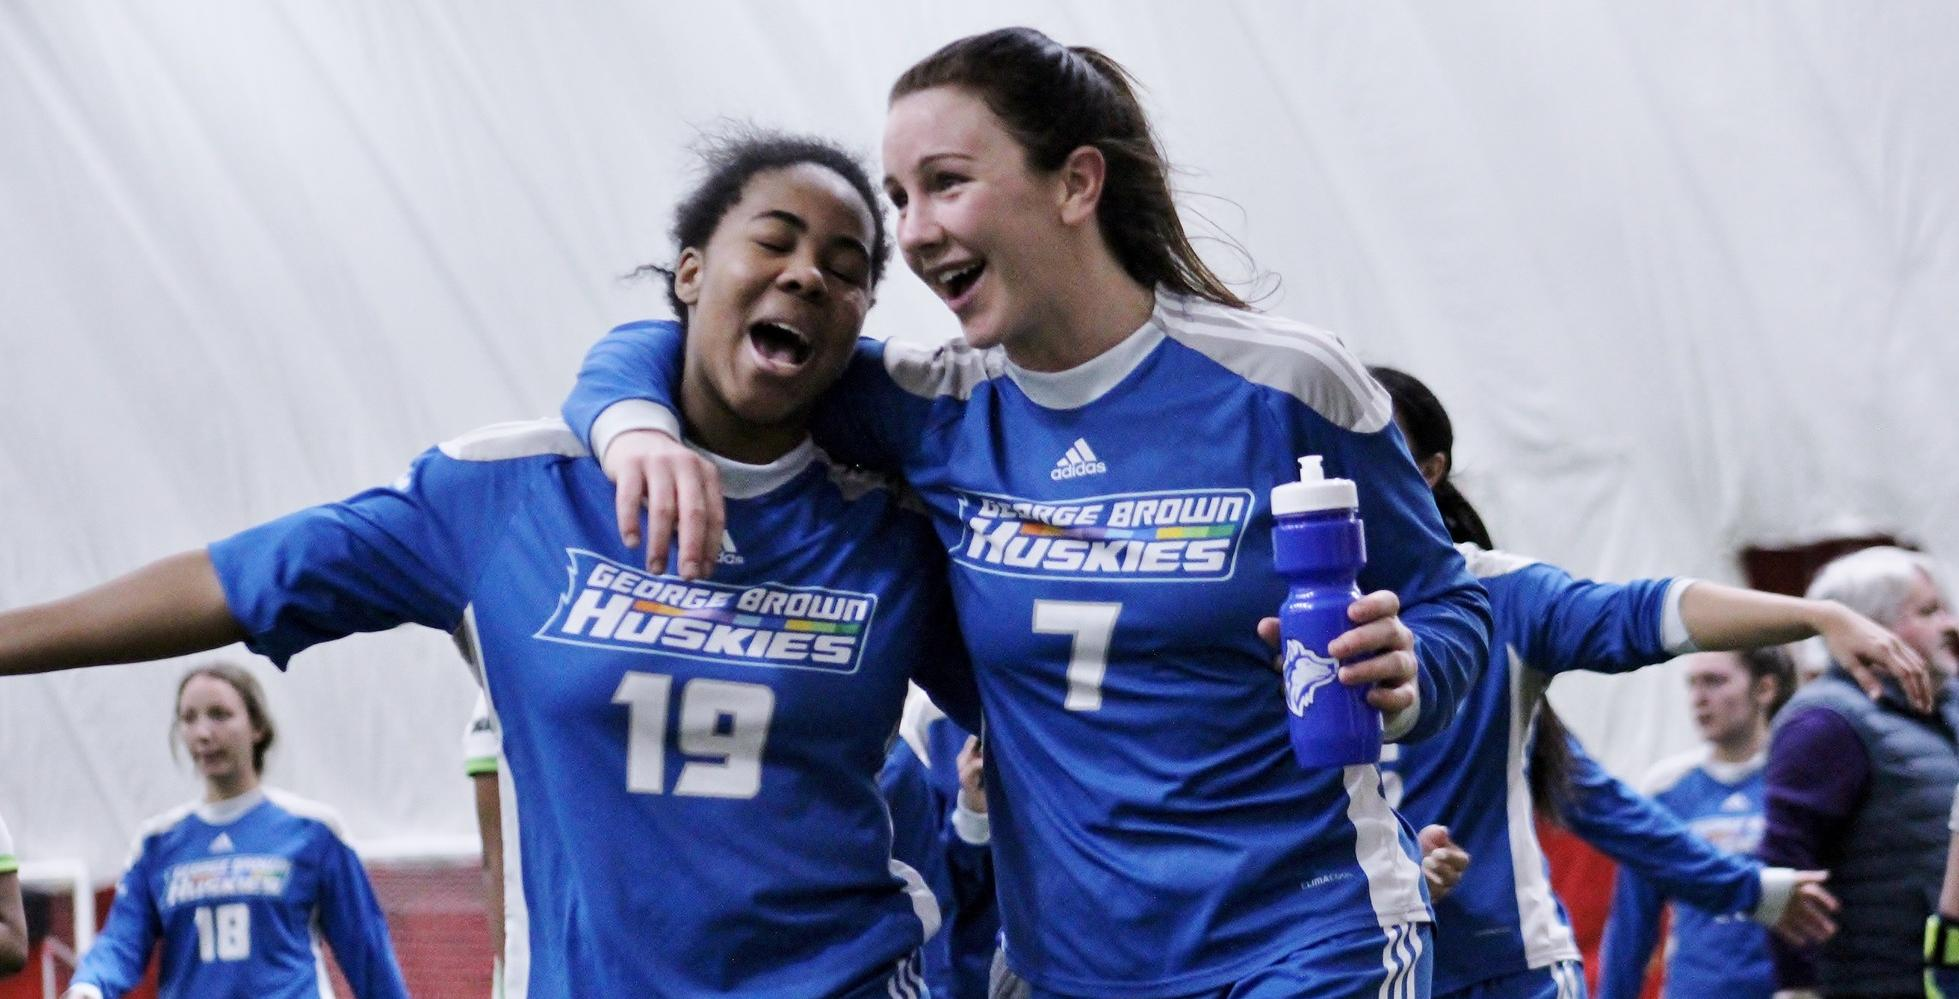 GEORGE BROWN INDOOR SOCCER GOES TWO FOR TWO AT REGIONALS